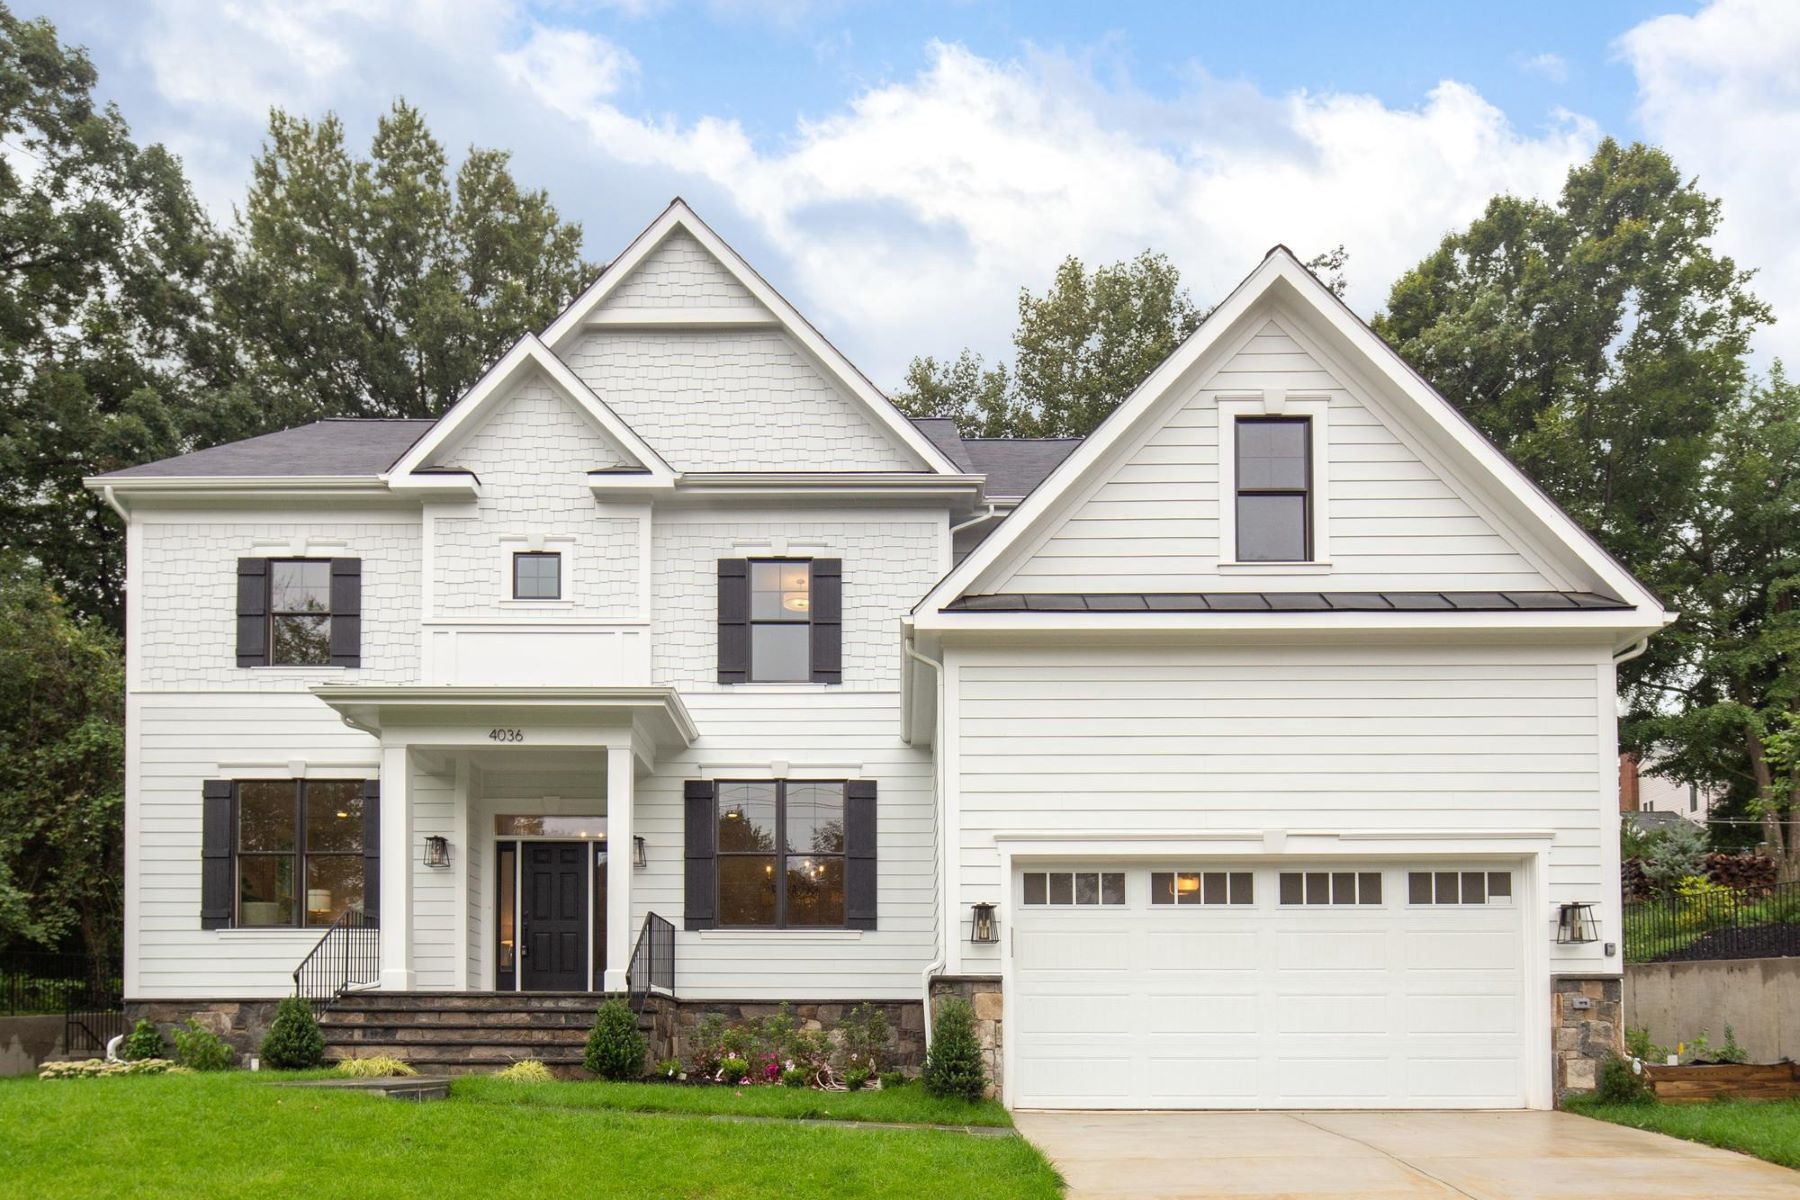 Single Family Home for Sale at 4036 35th St N 4036 35th St N Arlington, Virginia 22207 United States